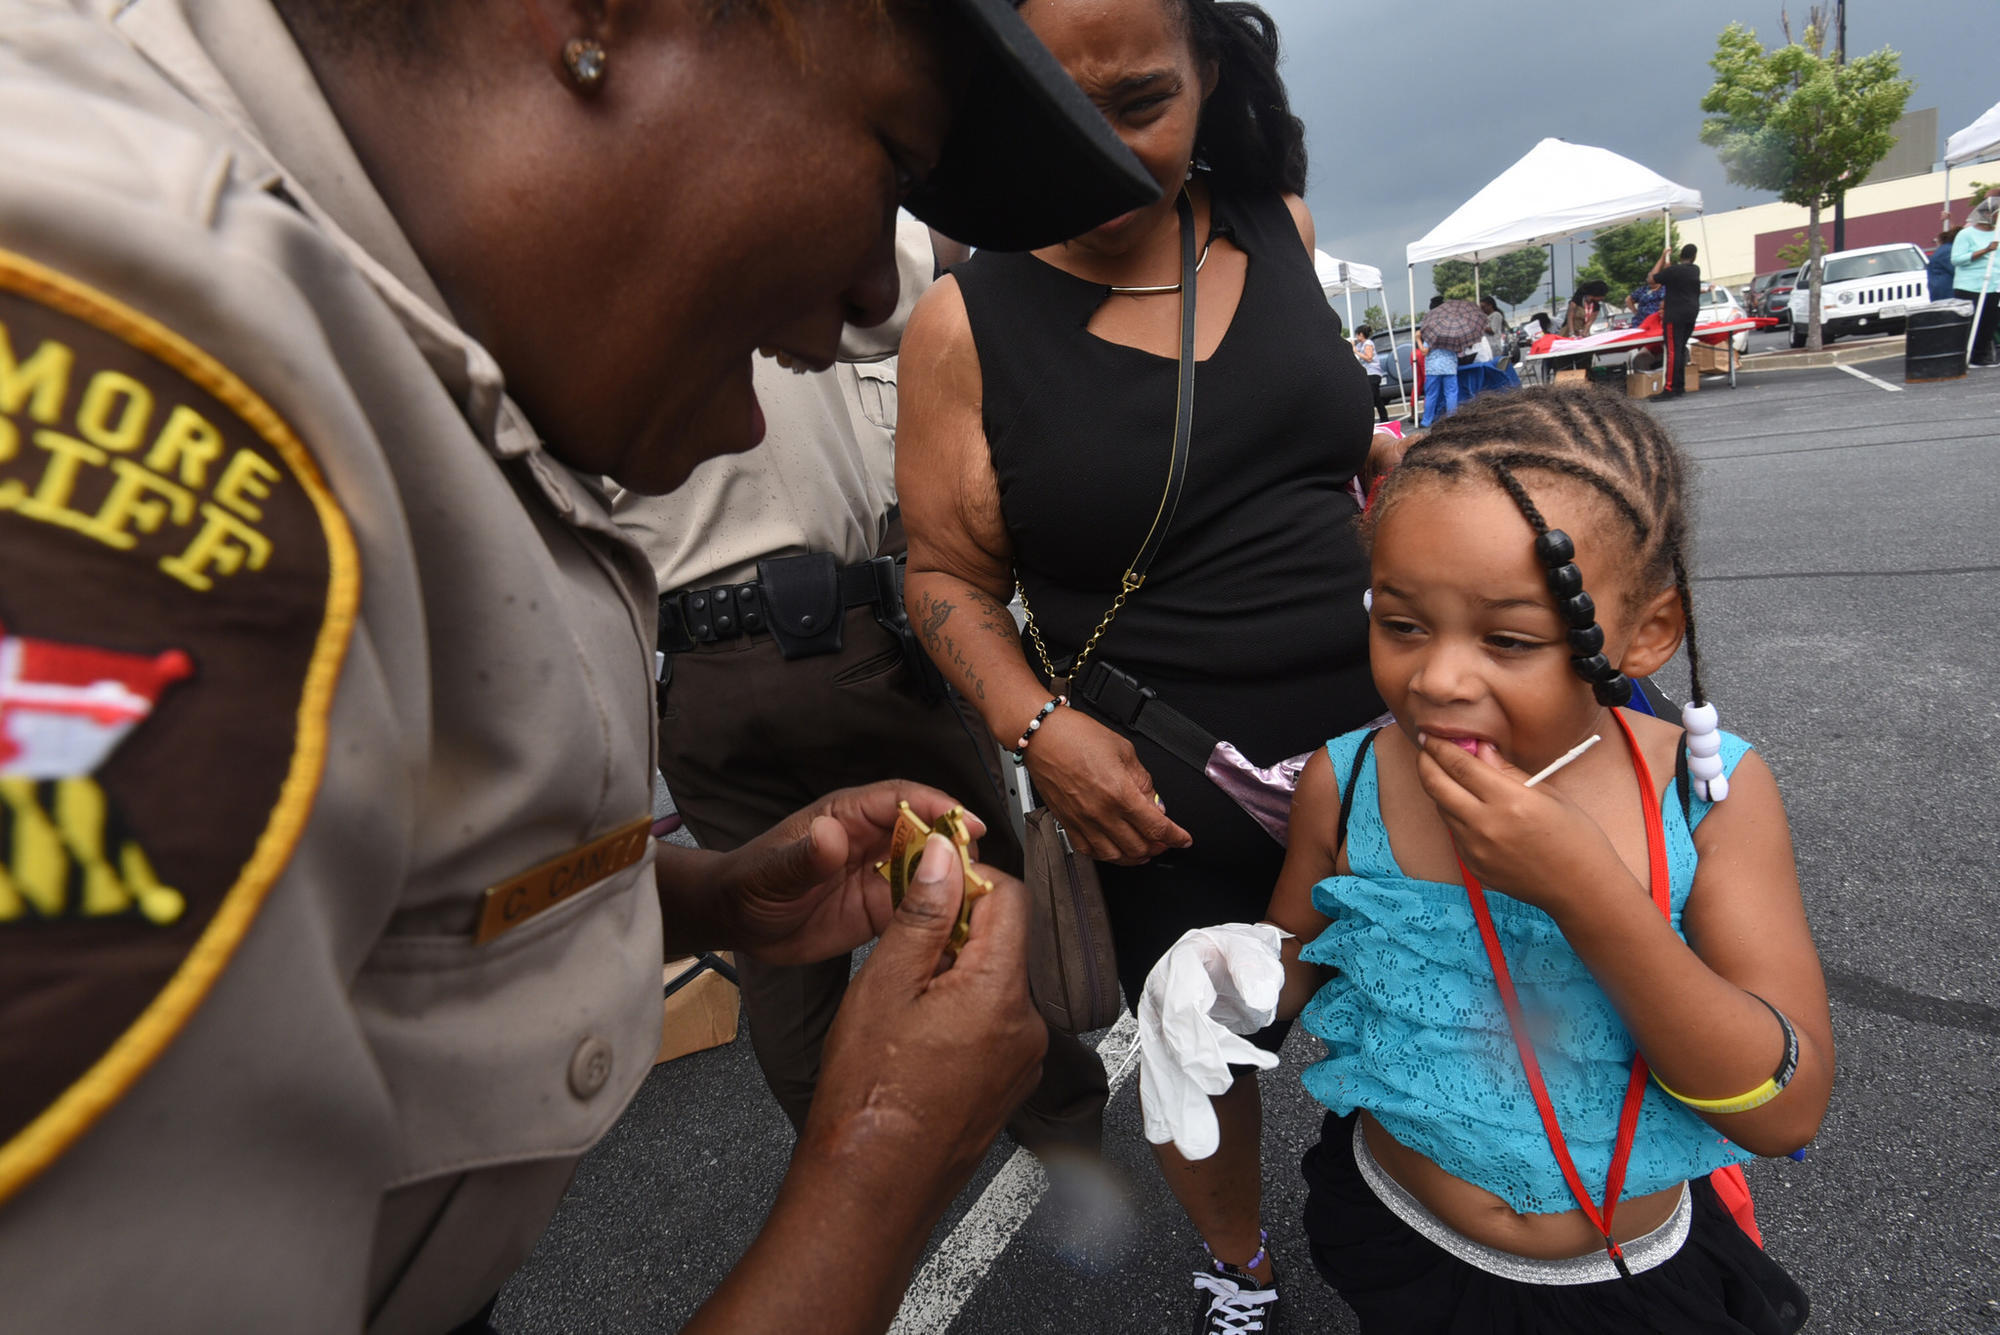 Police and communities gather for National Night Out events across Baltimore region | Baltimore Sun